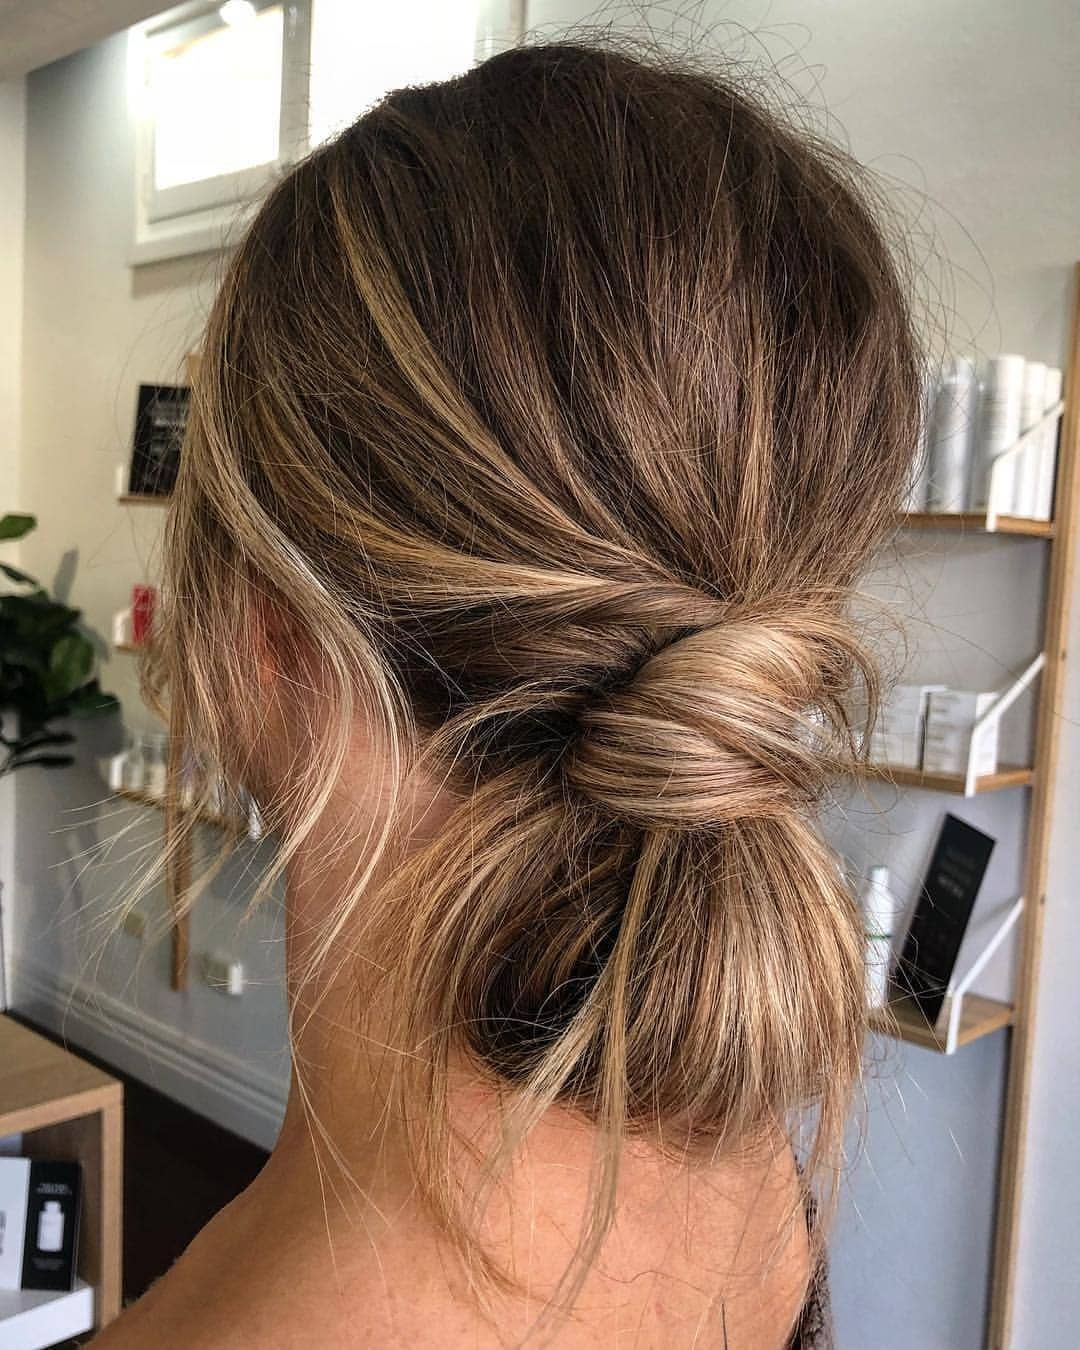 Pin On Hairstyles Updo